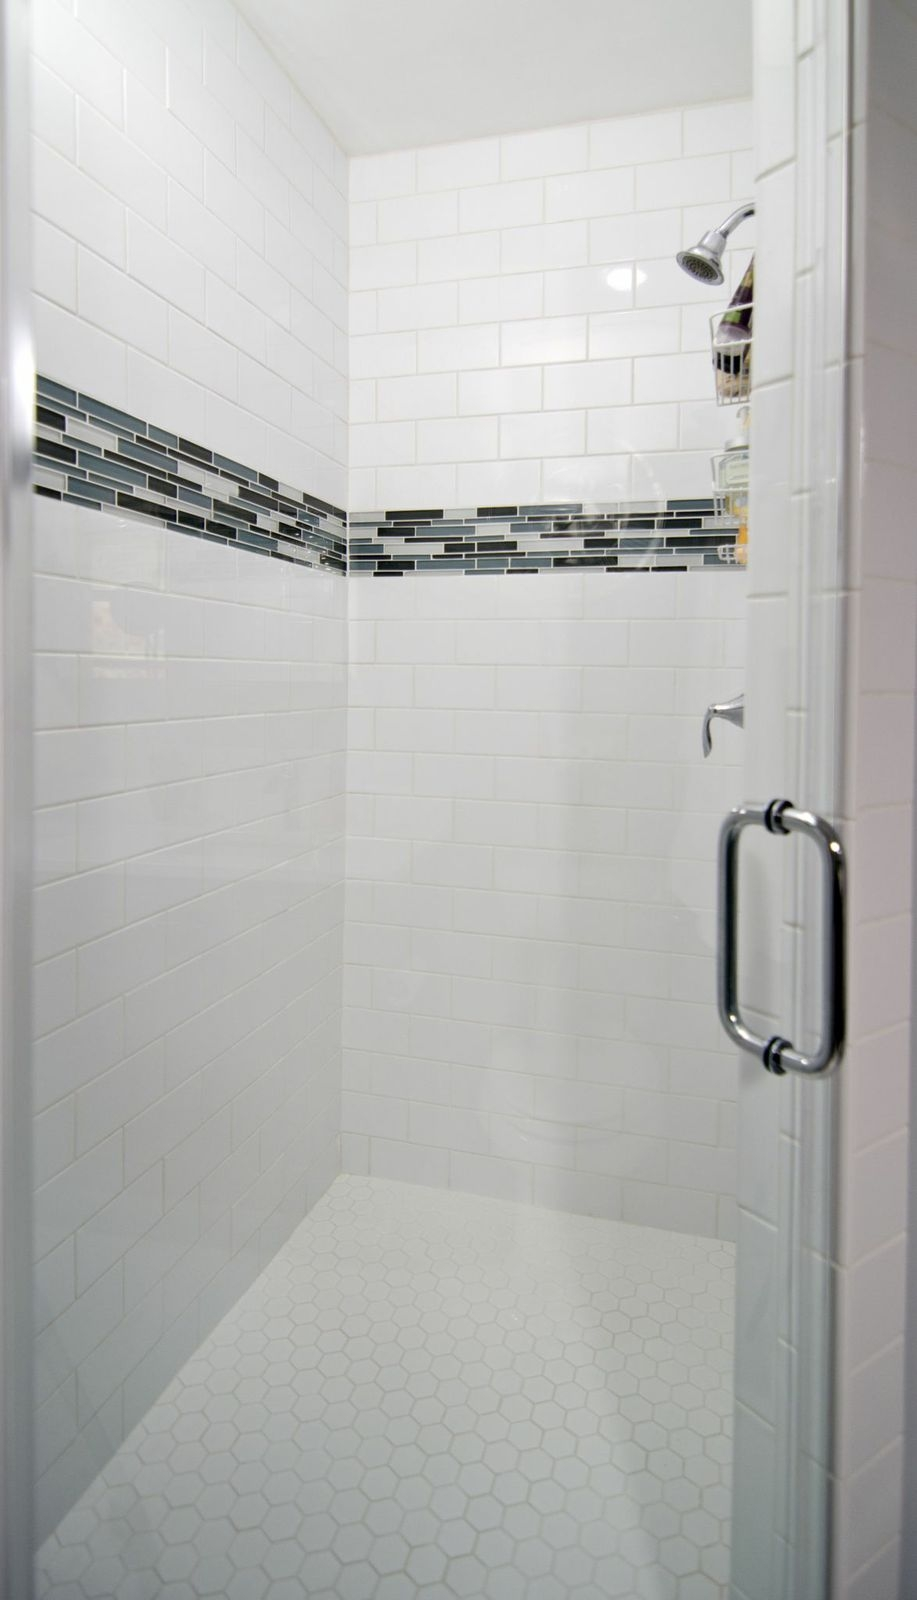 Bathroom Shower Tile Design Gallery. bathroom tile ideas. size tile ...